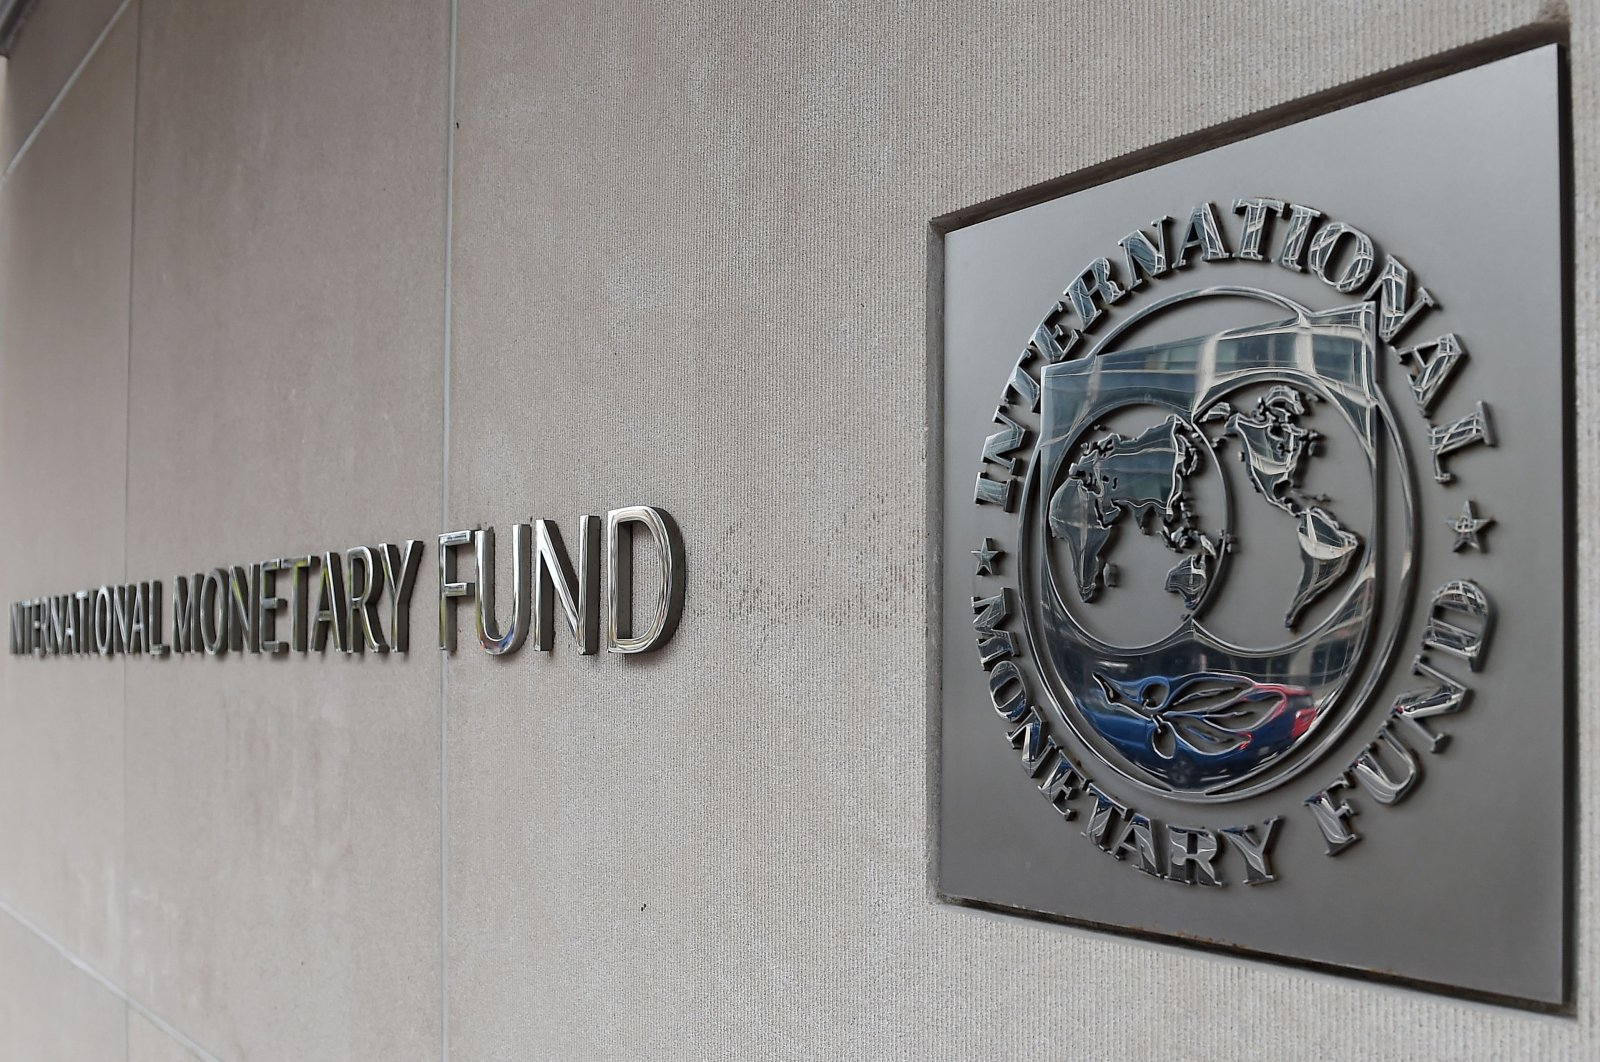 An exterior view of the building of the International Monetary Fund (IMF) in Washington, D.C., March 27, 2020. (AFP Photo)